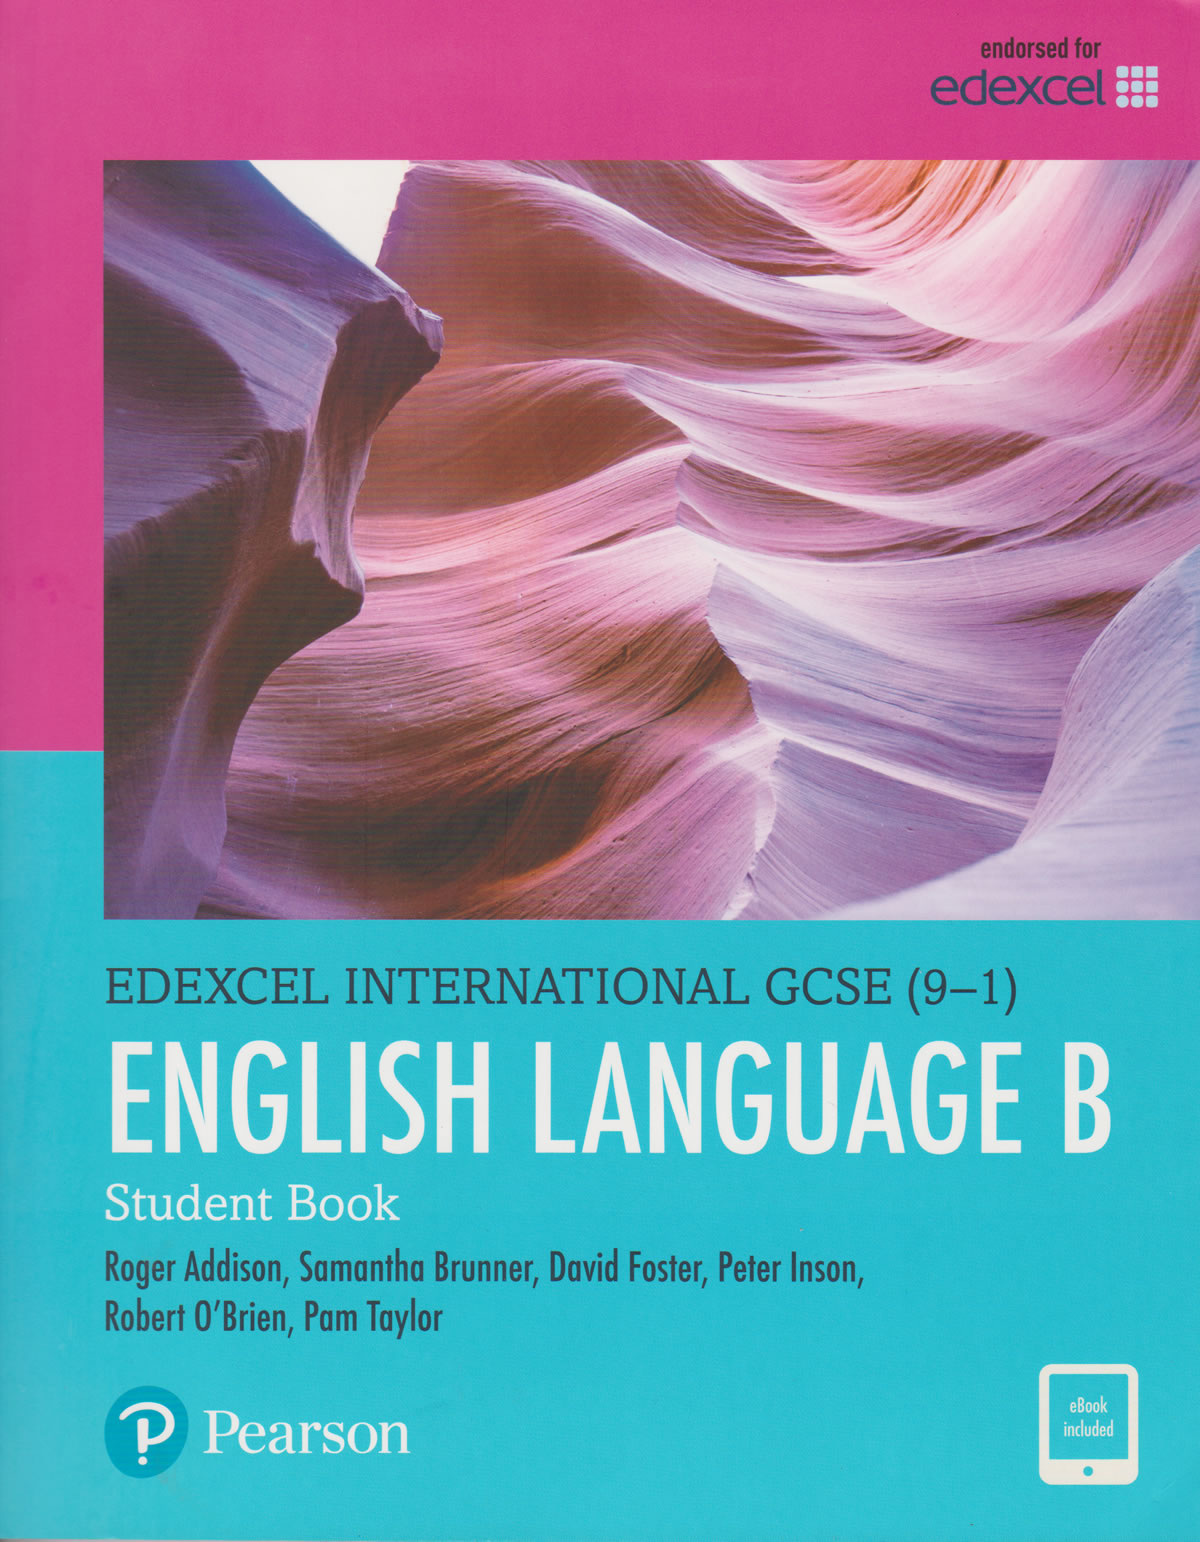 Edexcel International GCSE (9-1) English Language B Student Book | Books,  Stationery, Computers, Laptops and more  Buy online and get free delivery  on